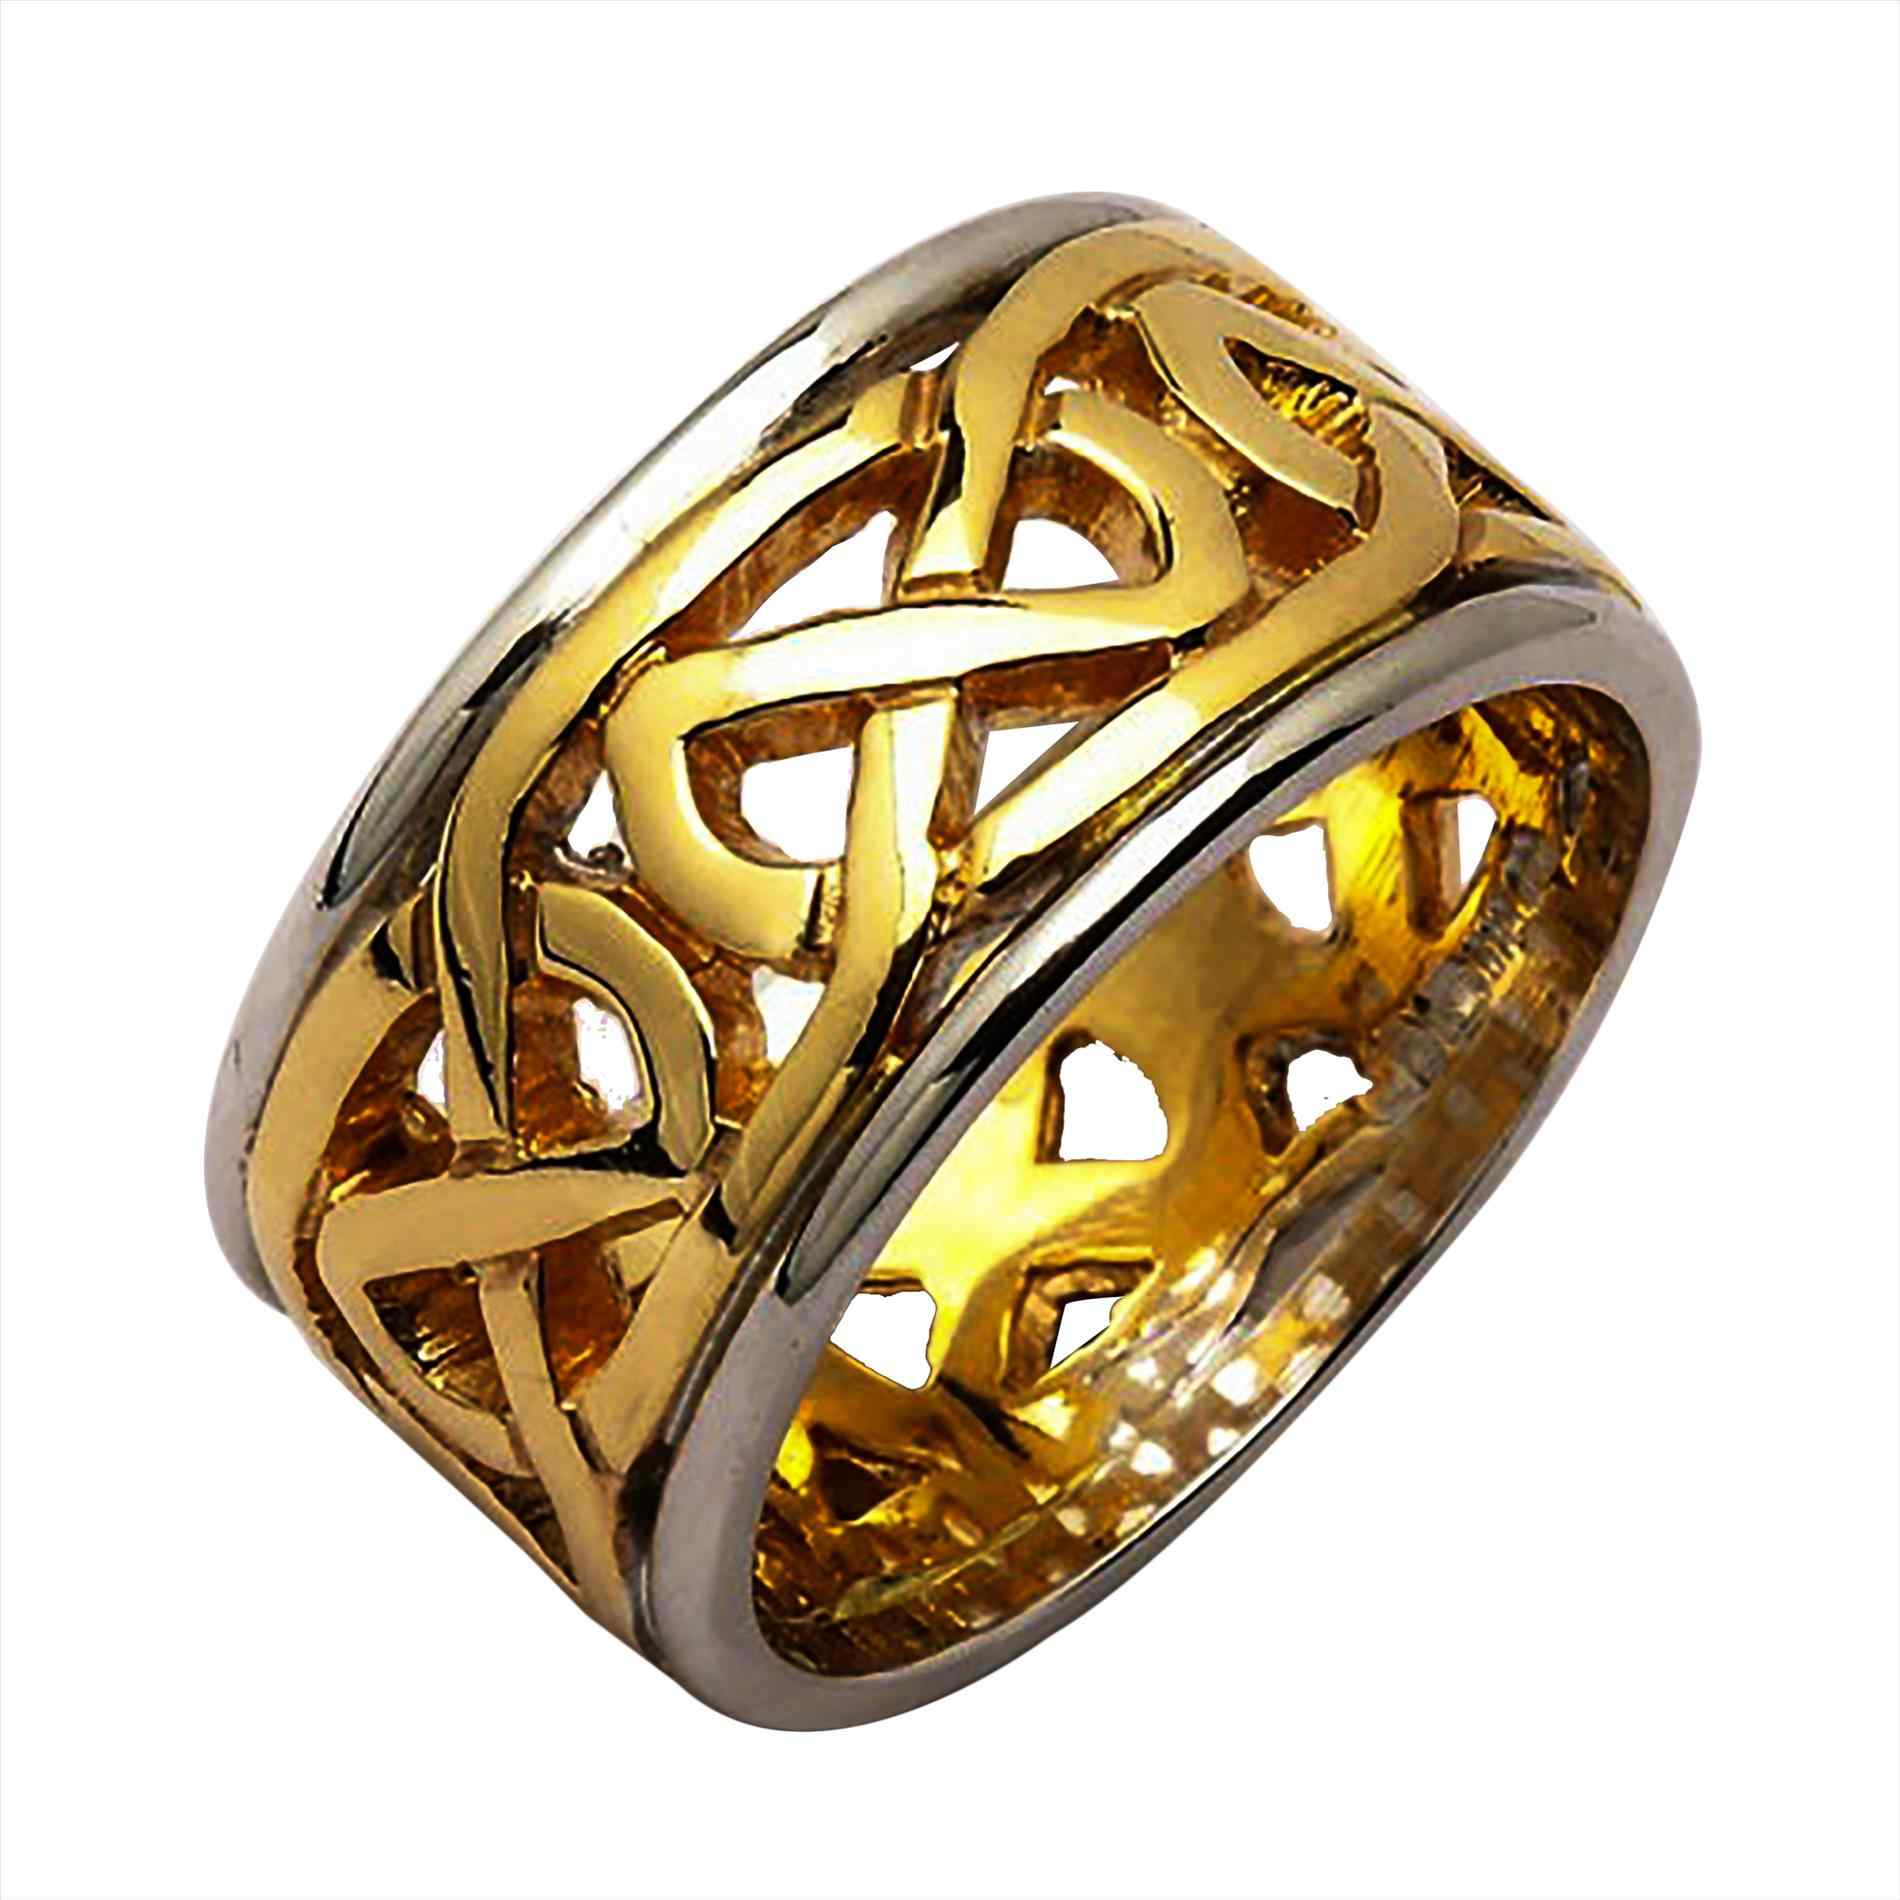 rind polished yellow wedding engraved band c textured gaelic nl for patterned designed rings gold bands and